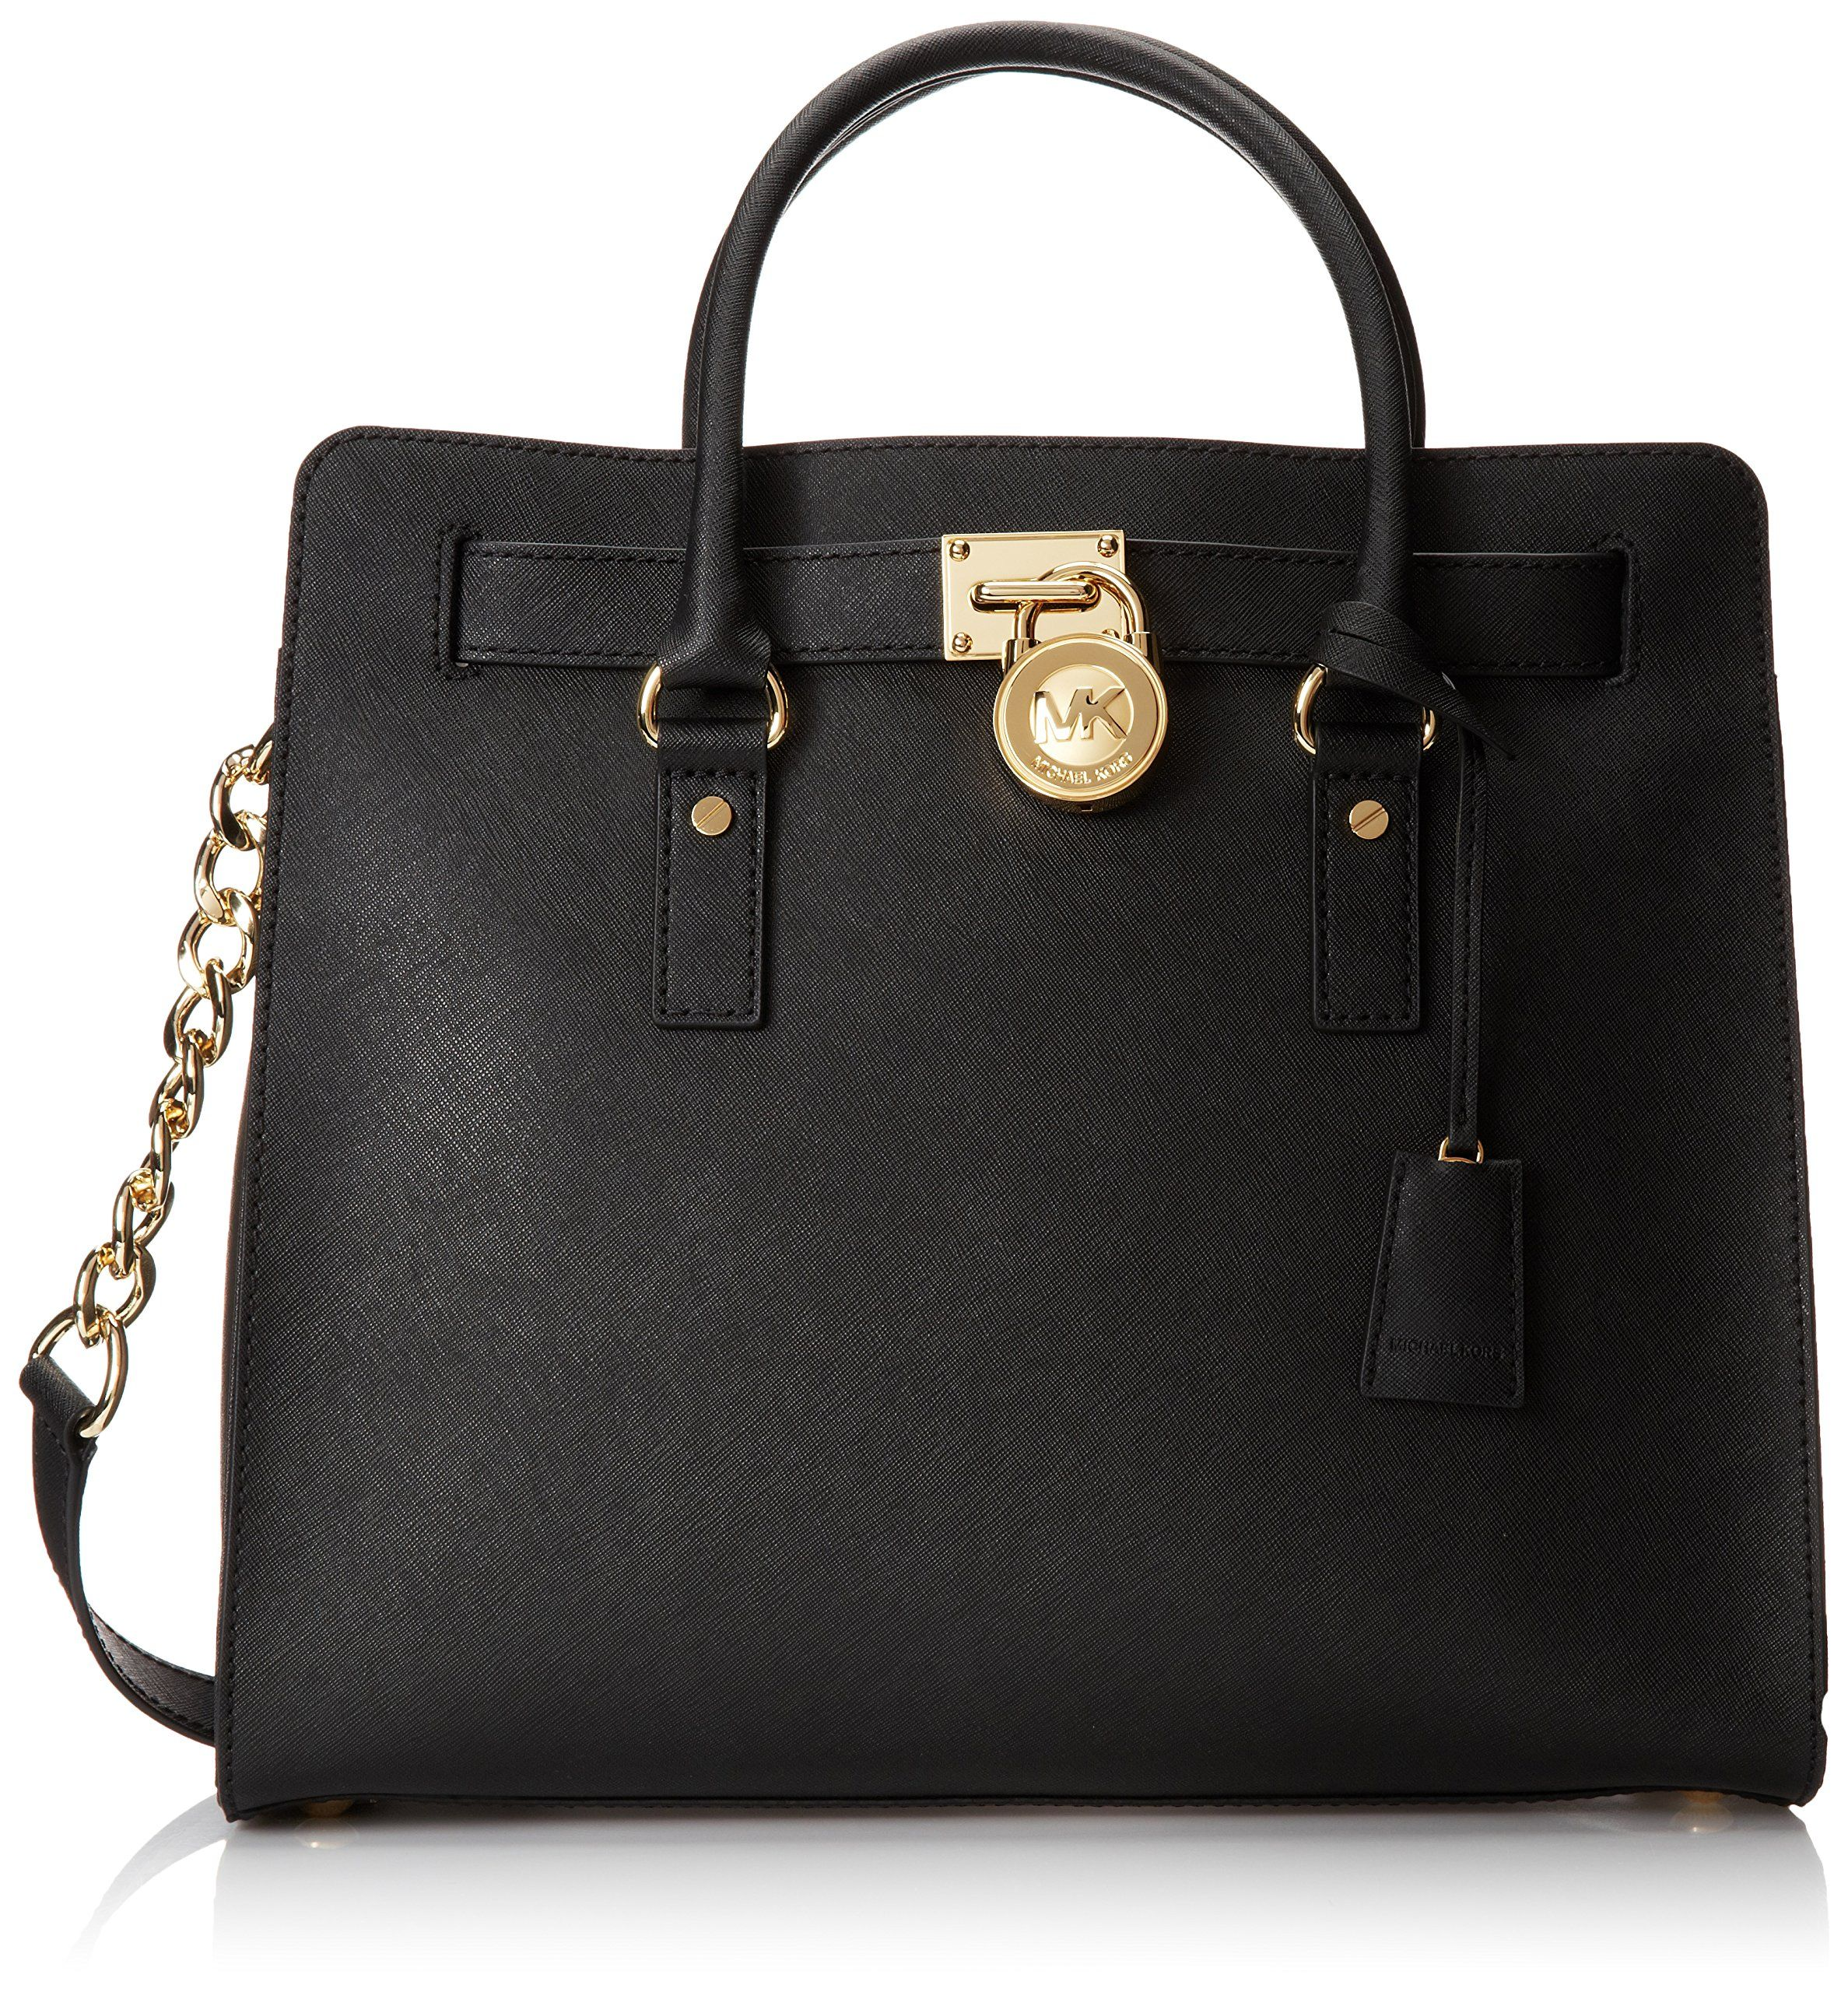 469101c52bcb Michael Kors Hamilton Saffiano Tote Women s Handbag Black  Handbags  Amazon .com